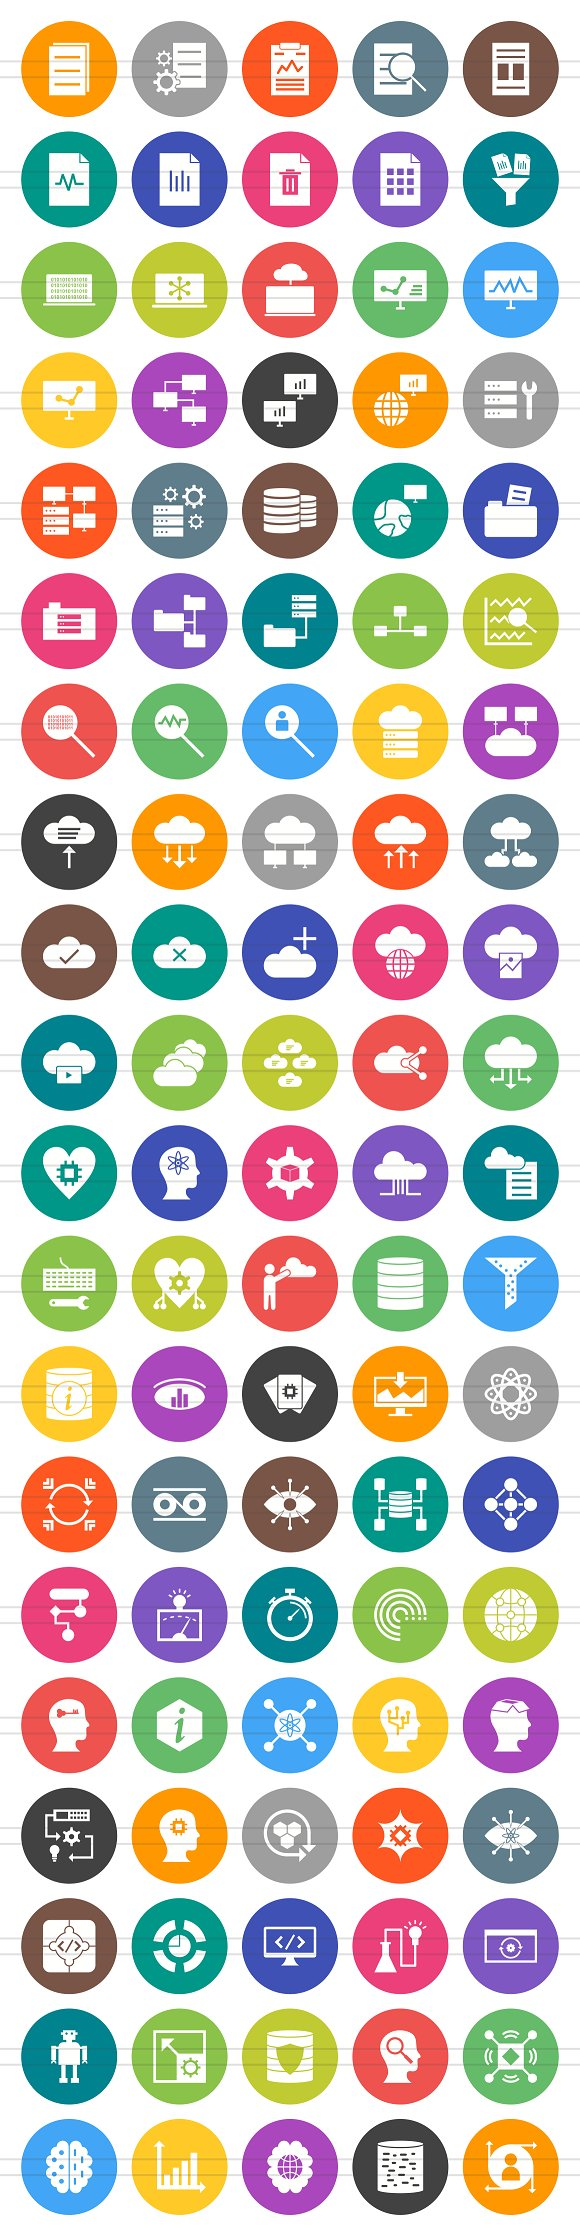 100 Data Filled Round Icons in Graphics - product preview 1